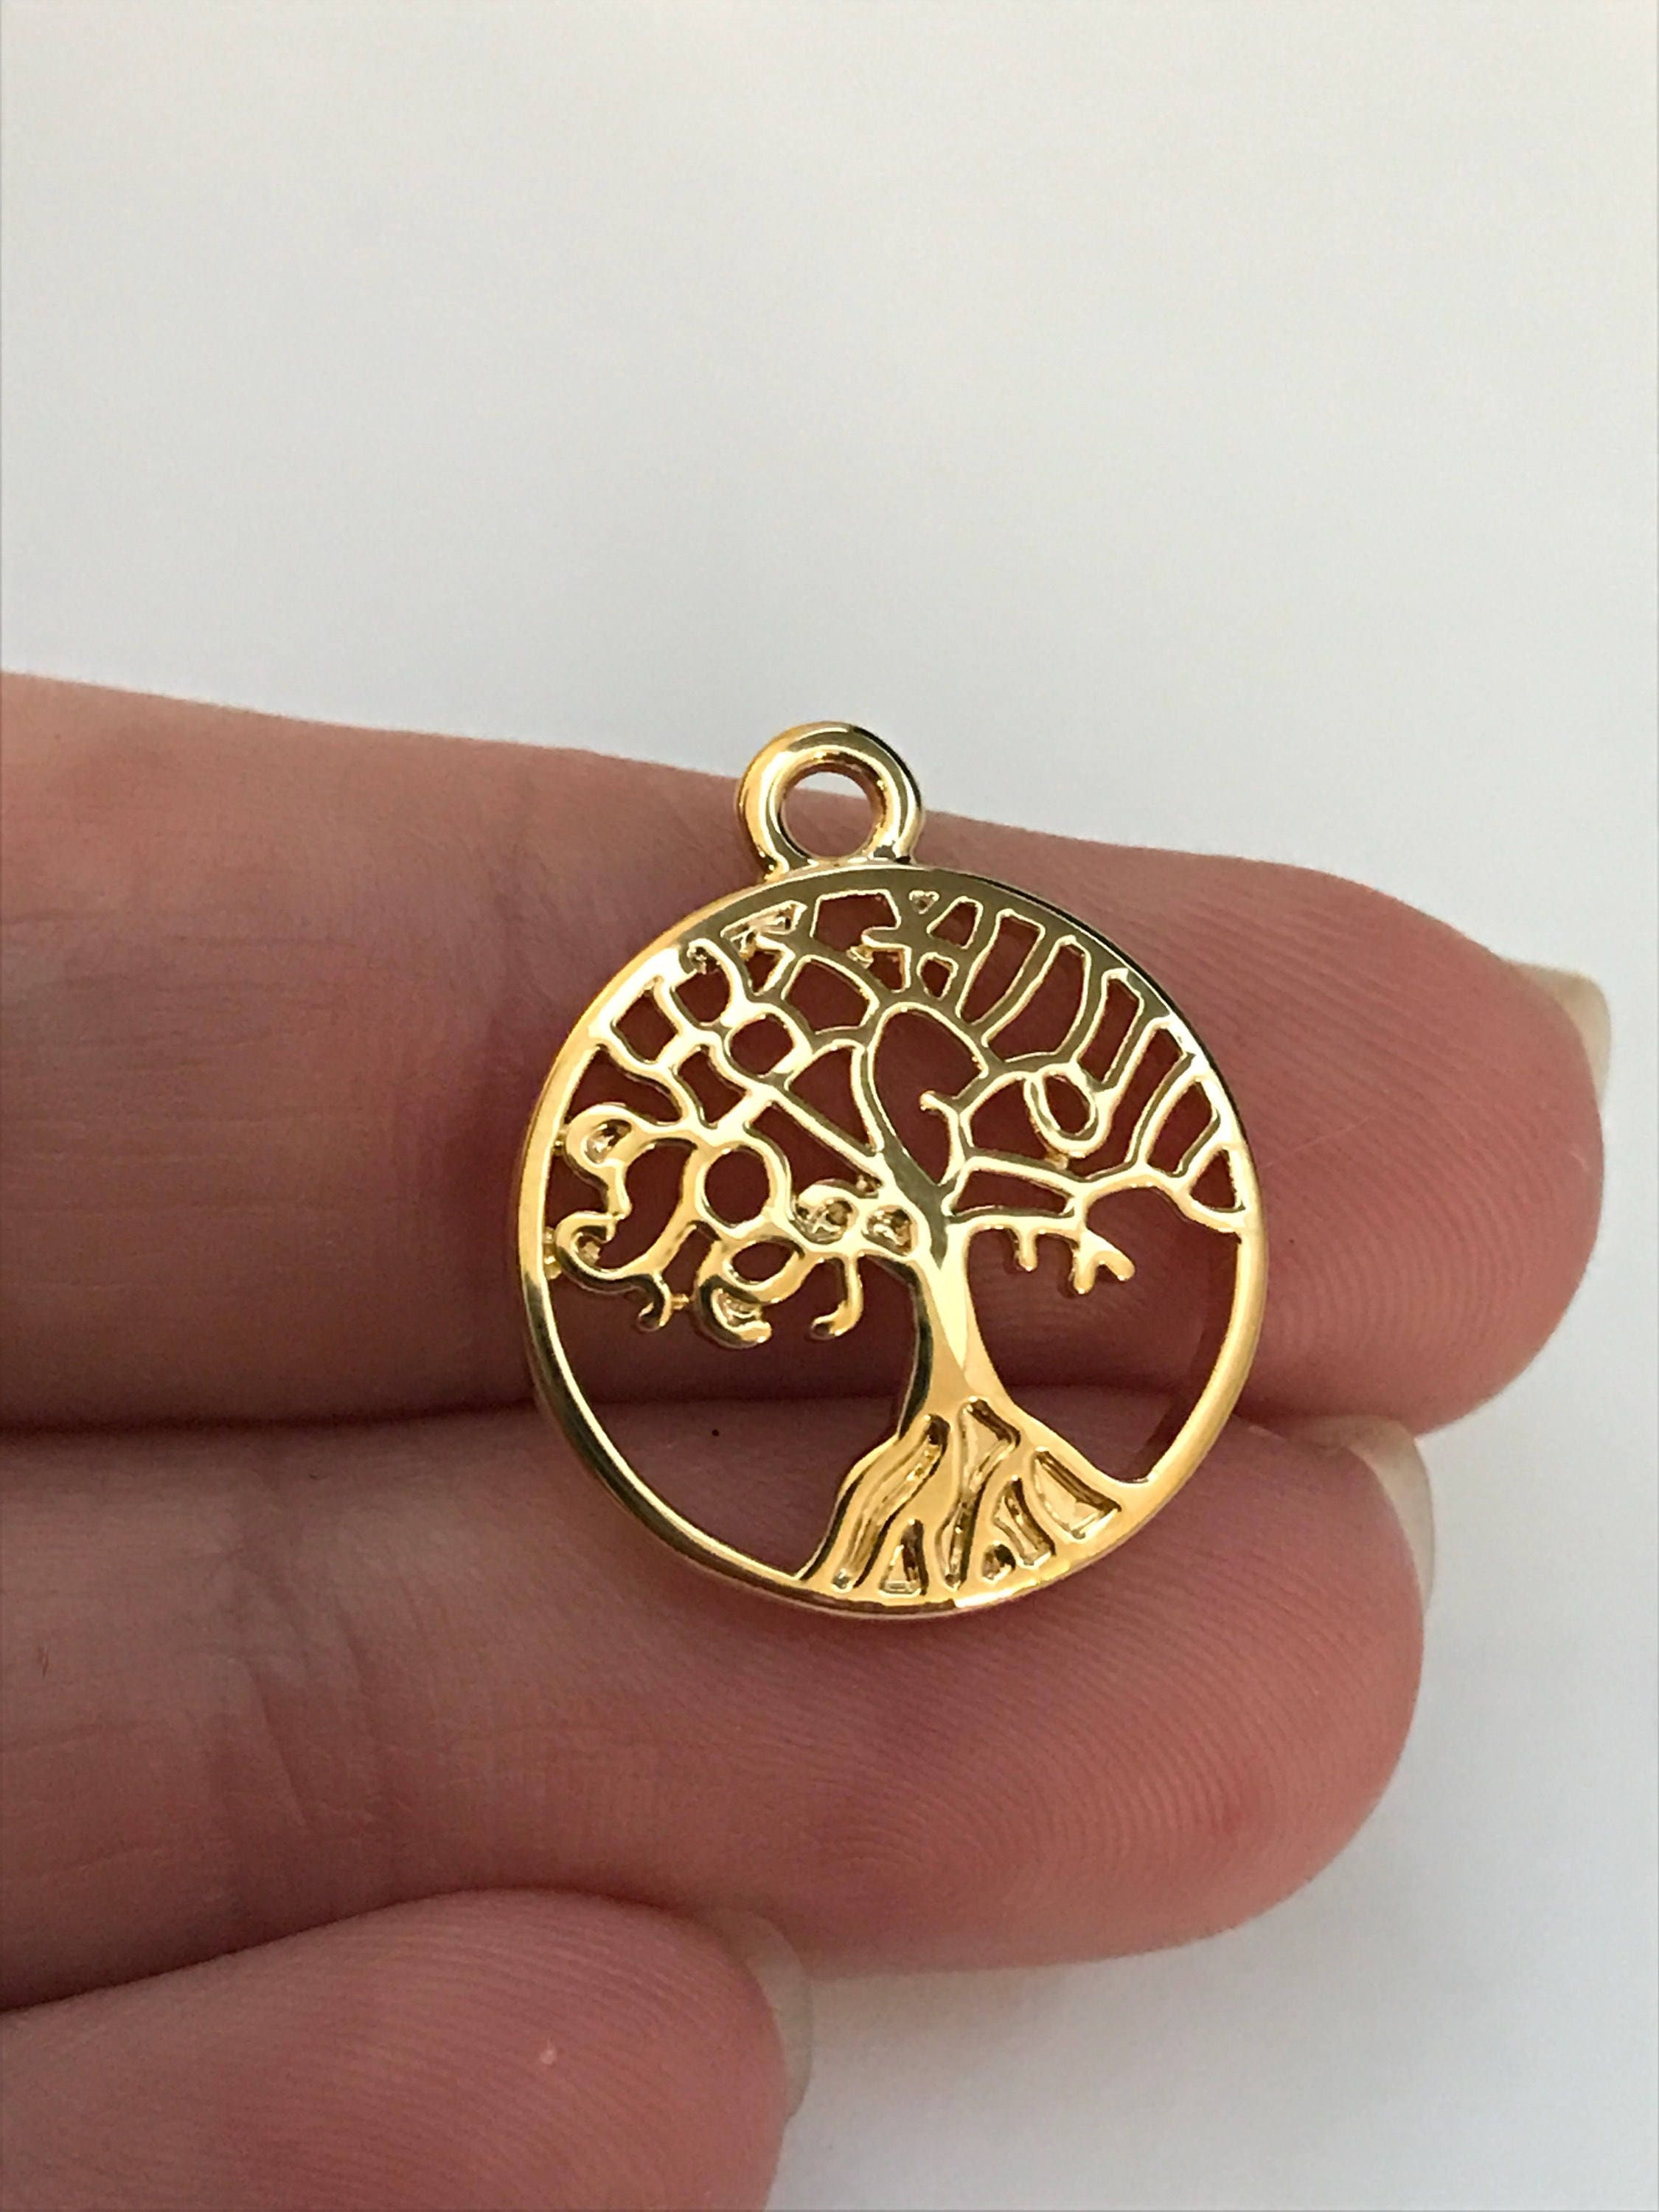 floating tree on heart pendant crystals orders overstock round locket queenberry charm necklace over shipping love product free jewelry family watches